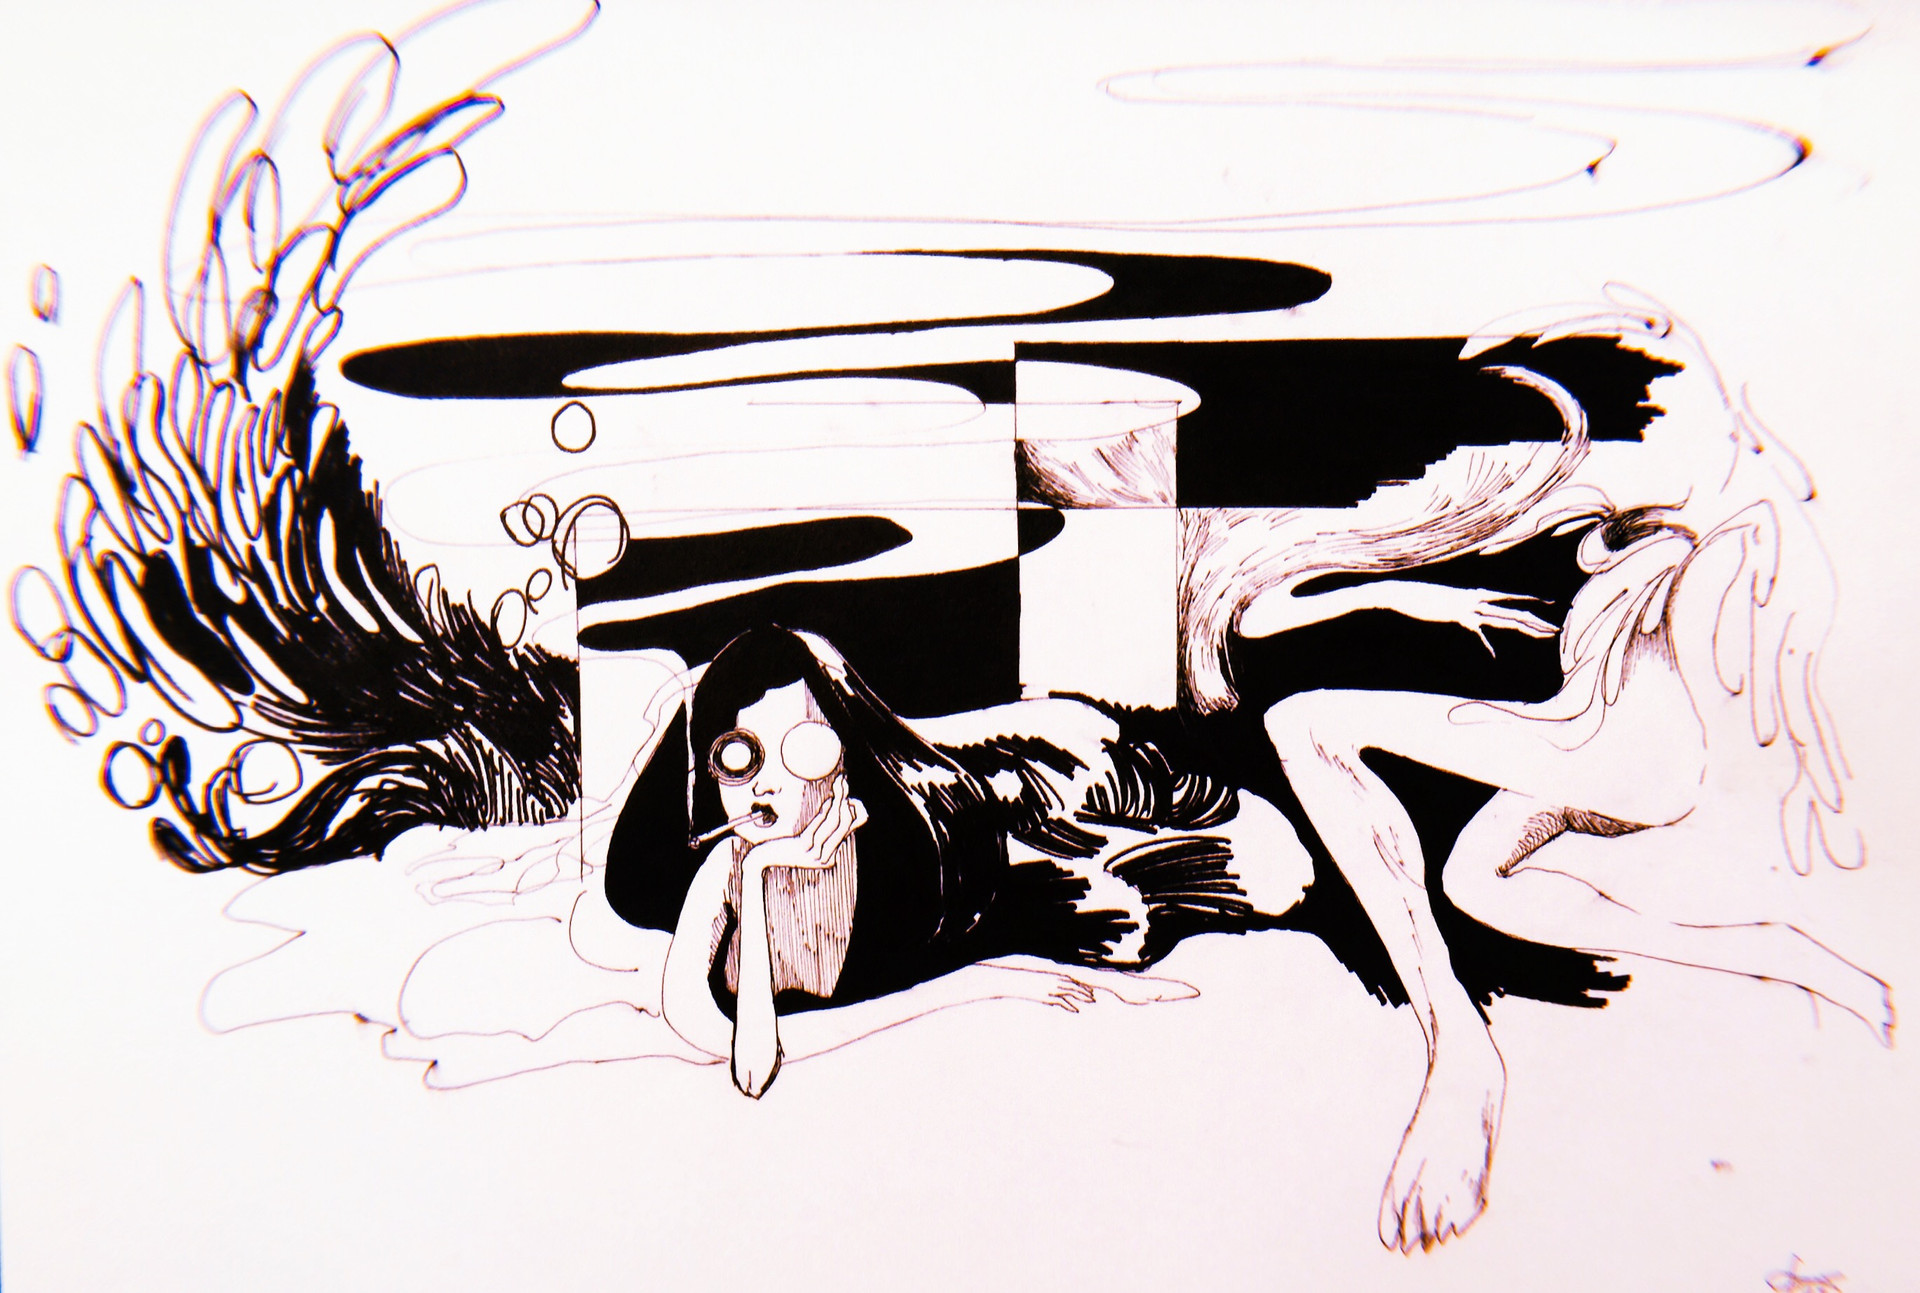 daydreaming, after Steadman